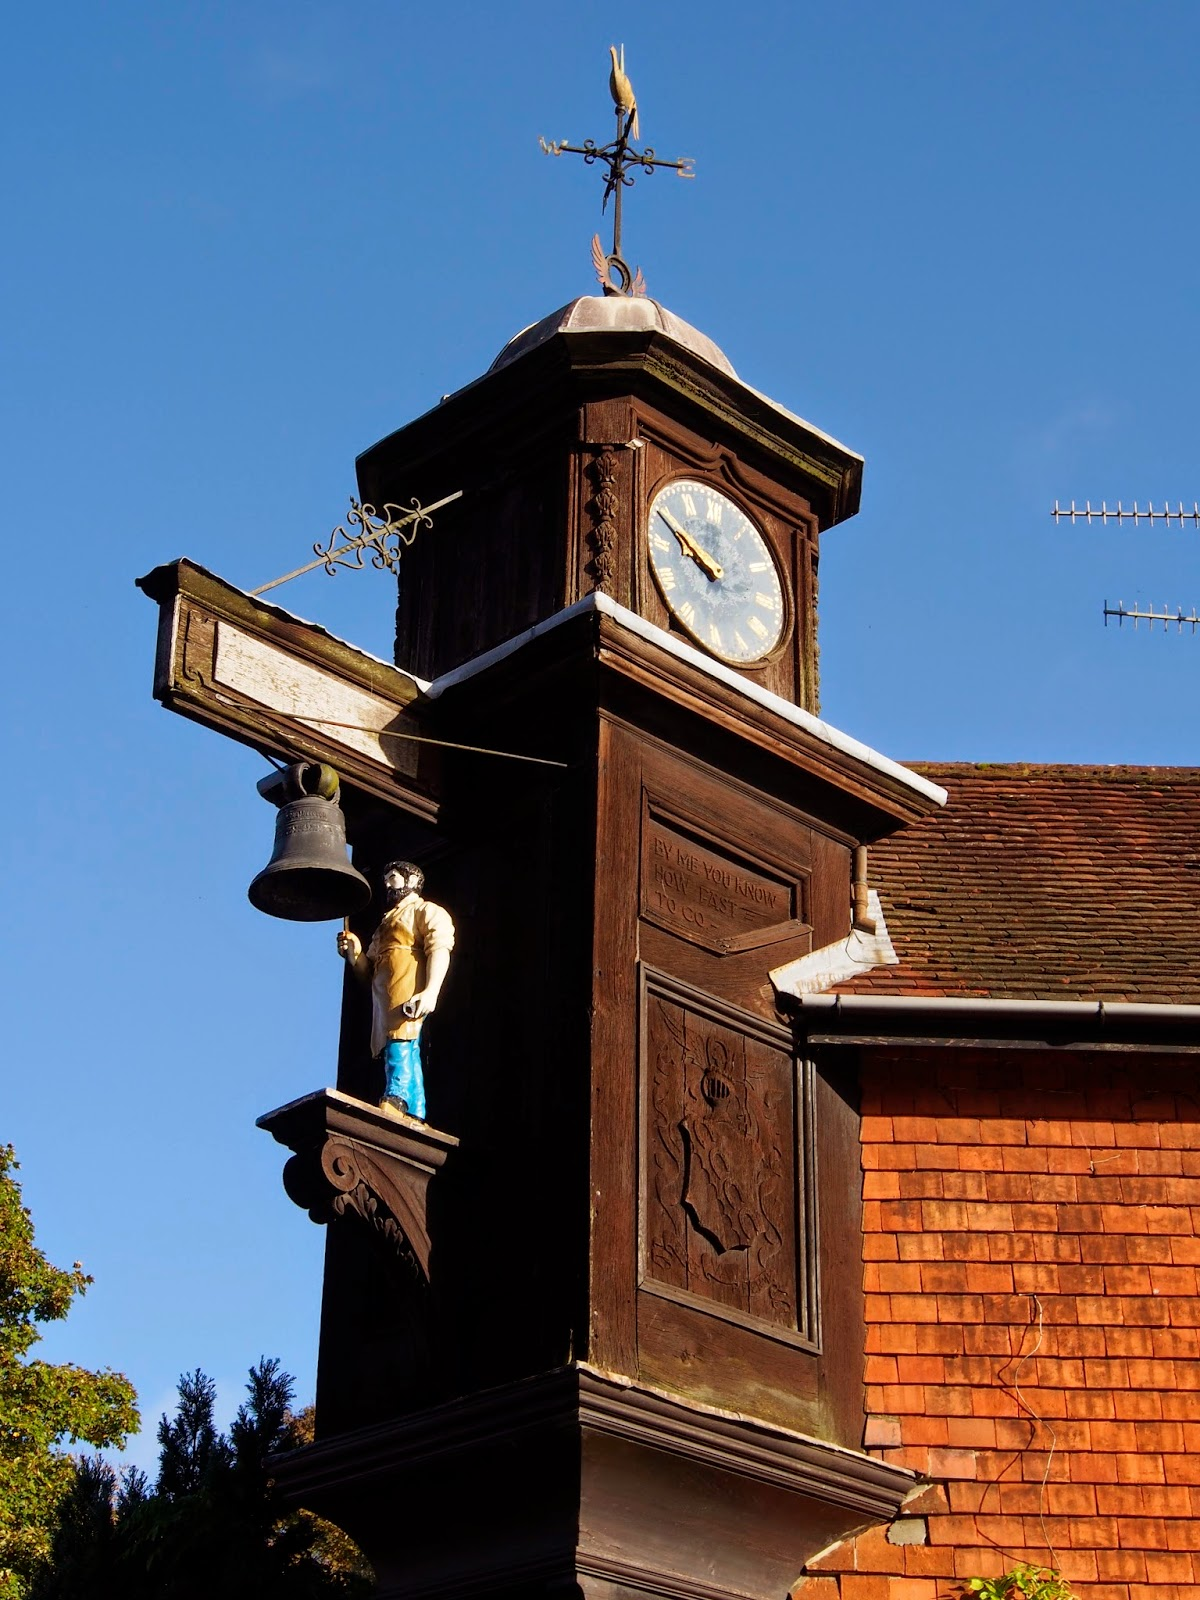 Abinger Hammer Clock, Surrey, travel, England, UK